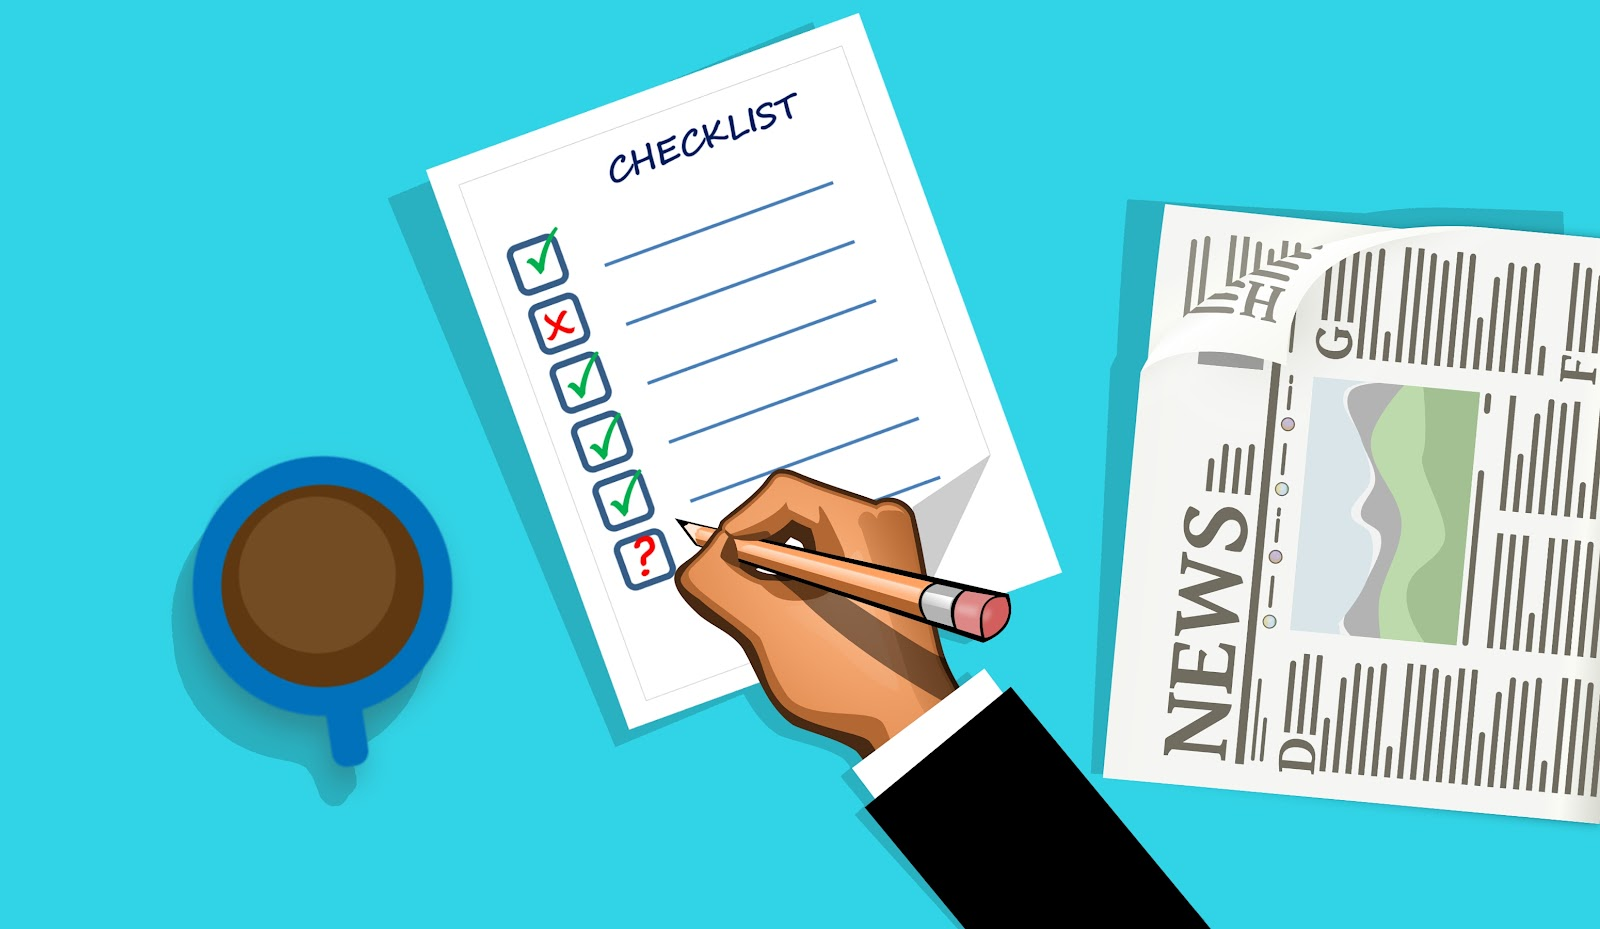 https://get.pxhere.com/photo/checklist-check-list-clipboard-report-checkbox-note-document-paper-notebook-checkmark-office-form-mark-test-tick-board-choice-questionnaire-sign-yes-no-news-hand-coffee-text-graphic-design-design-font-illustration-diagram-finger-gesture-business-paper-product-brand-1568433.jpg